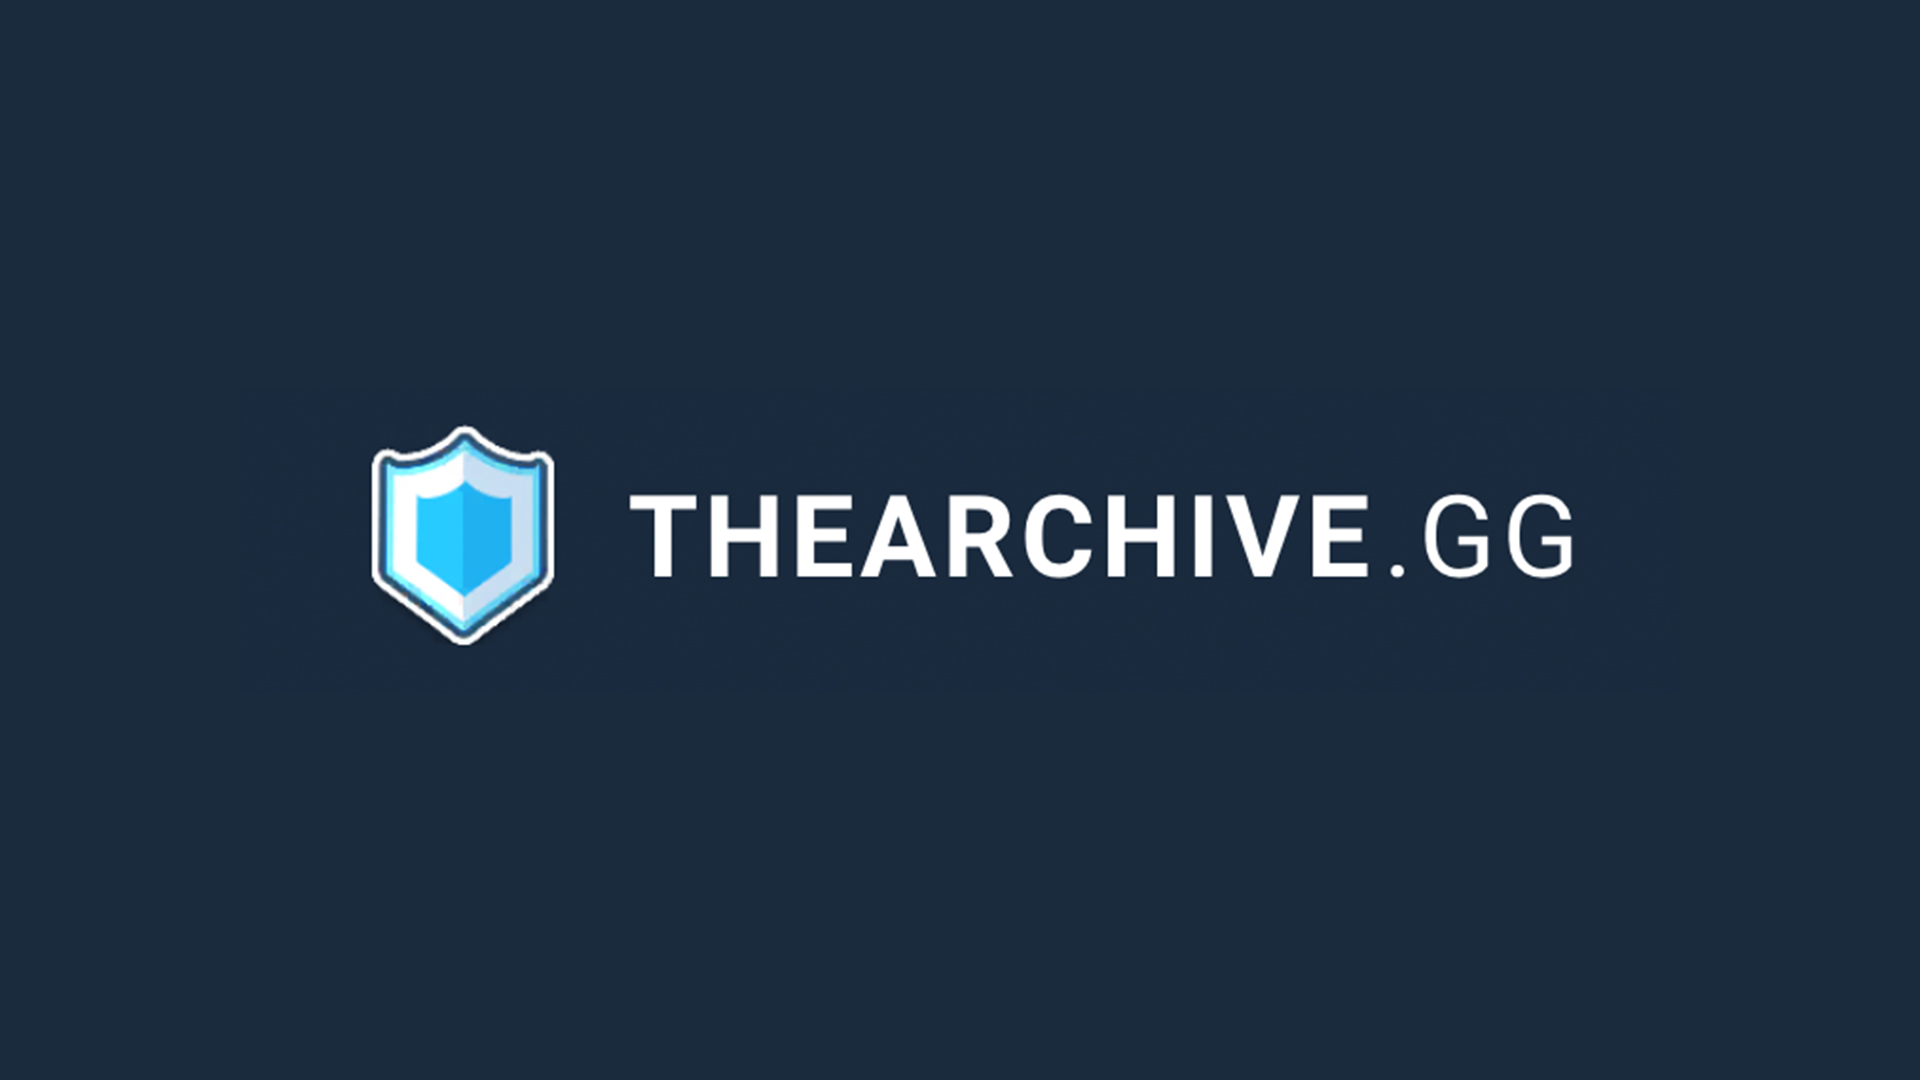 The-Archive-GG-logo